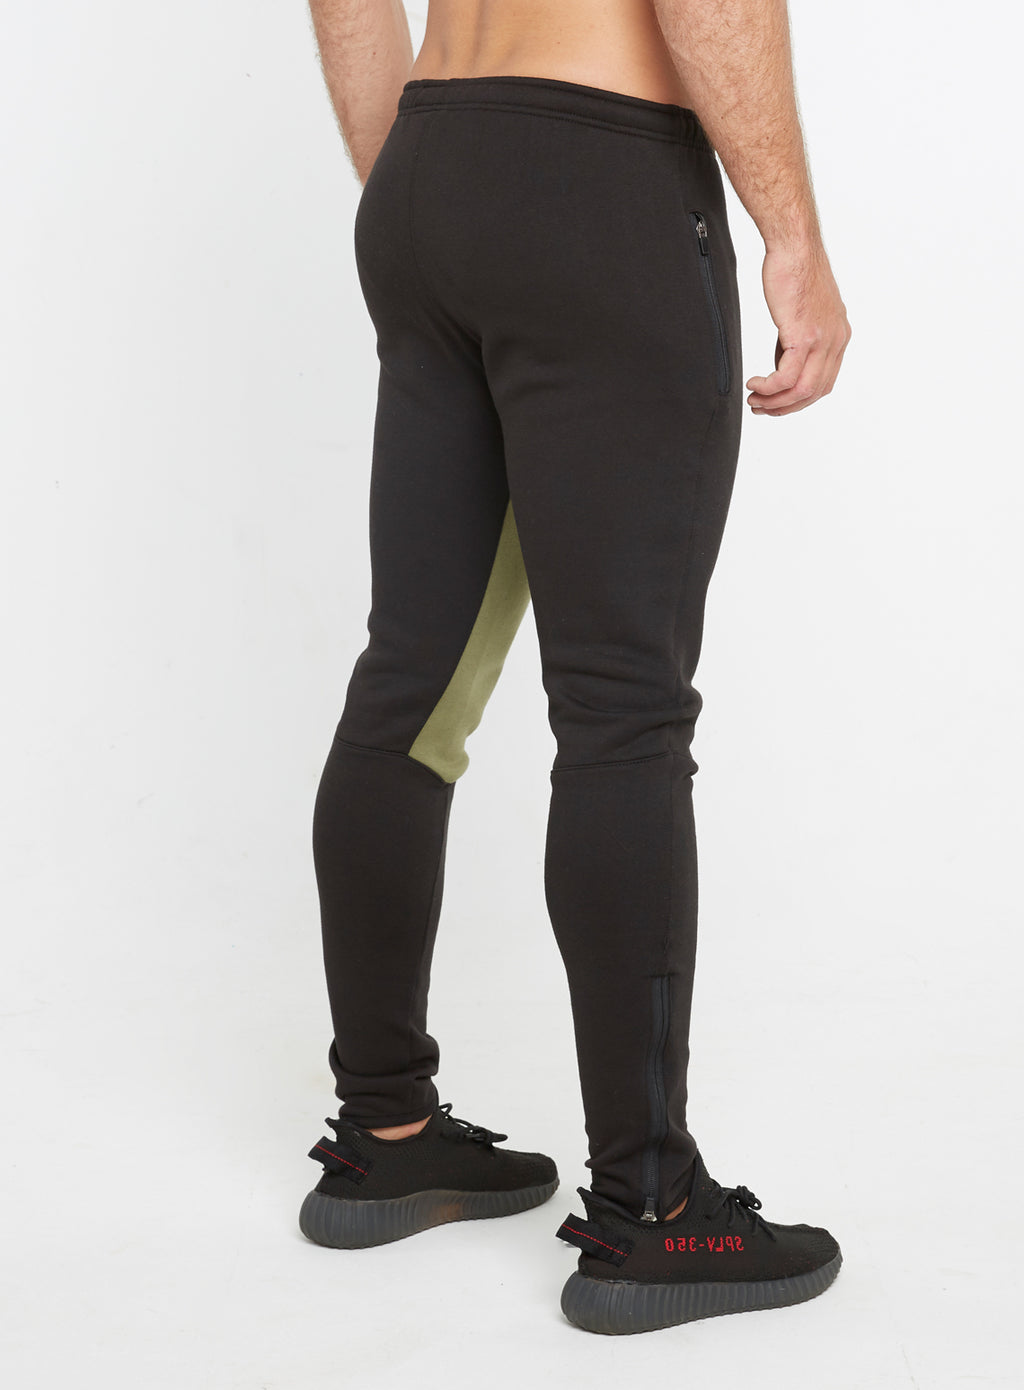 Black and Khaki Joggers